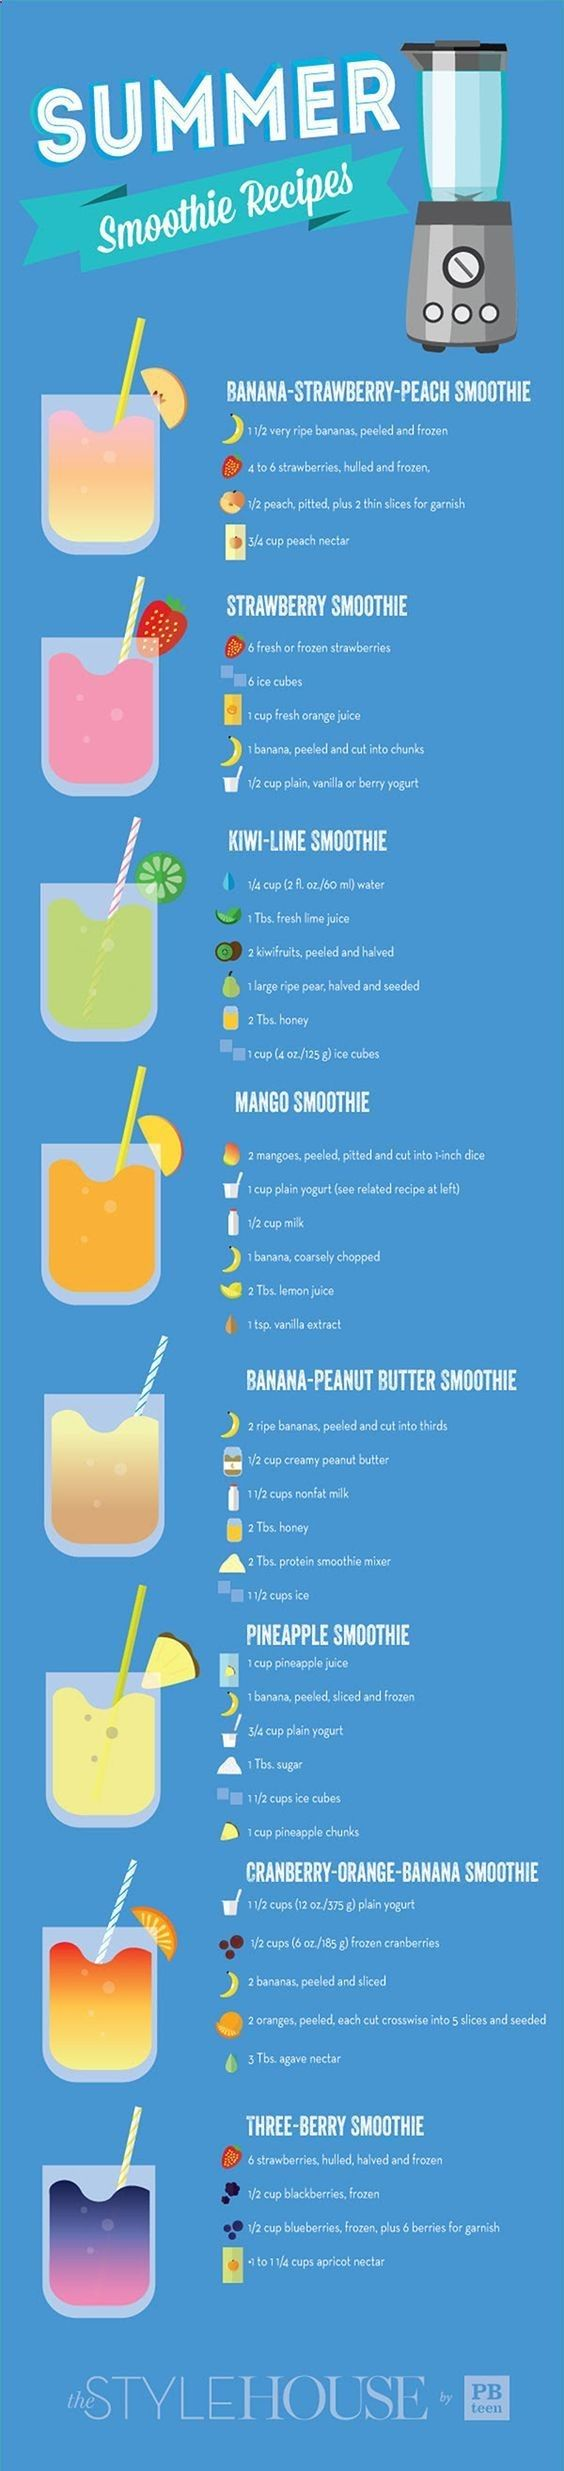 Fat Fast Shrinking Signal Diet-Recipes  - 8 Summer Smoothies - Recipes - SavingsMania: - Do This One Unusual 10-Minute Trick Before Work To Melt Away 15+ Pounds of Belly Fat